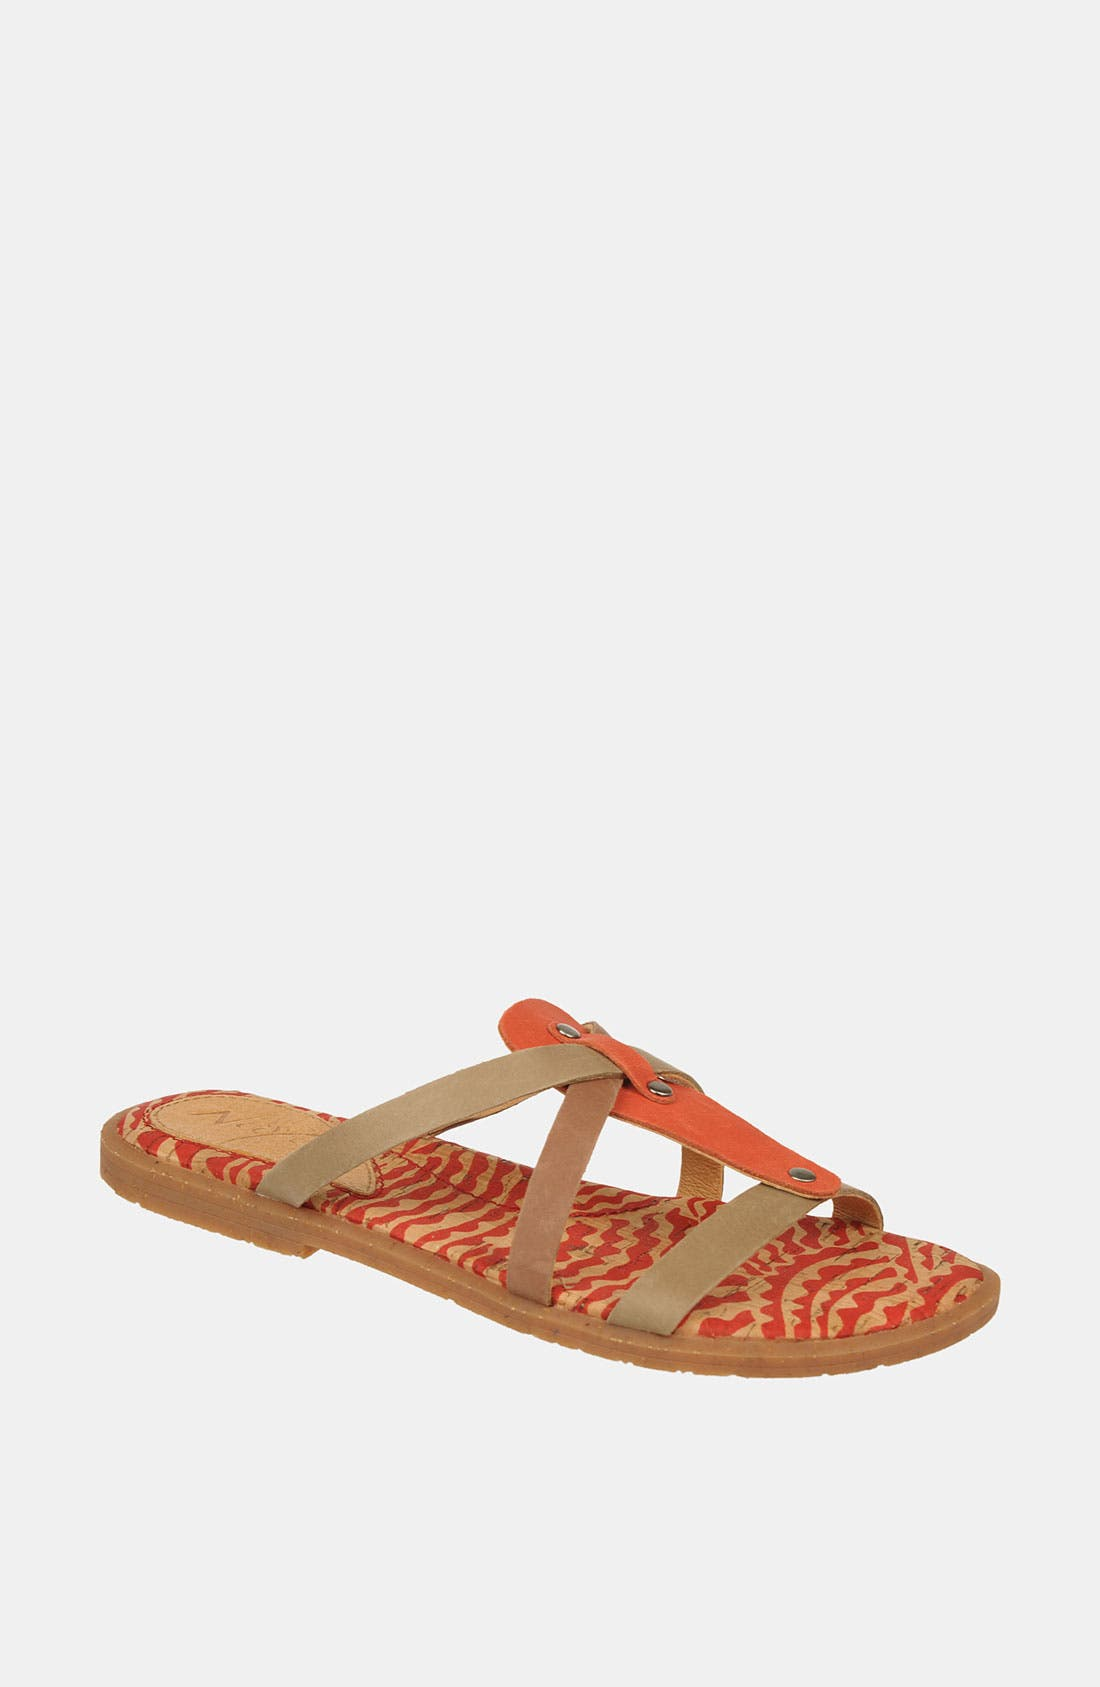 Main Image - Naya 'Painted Sock' Sandal